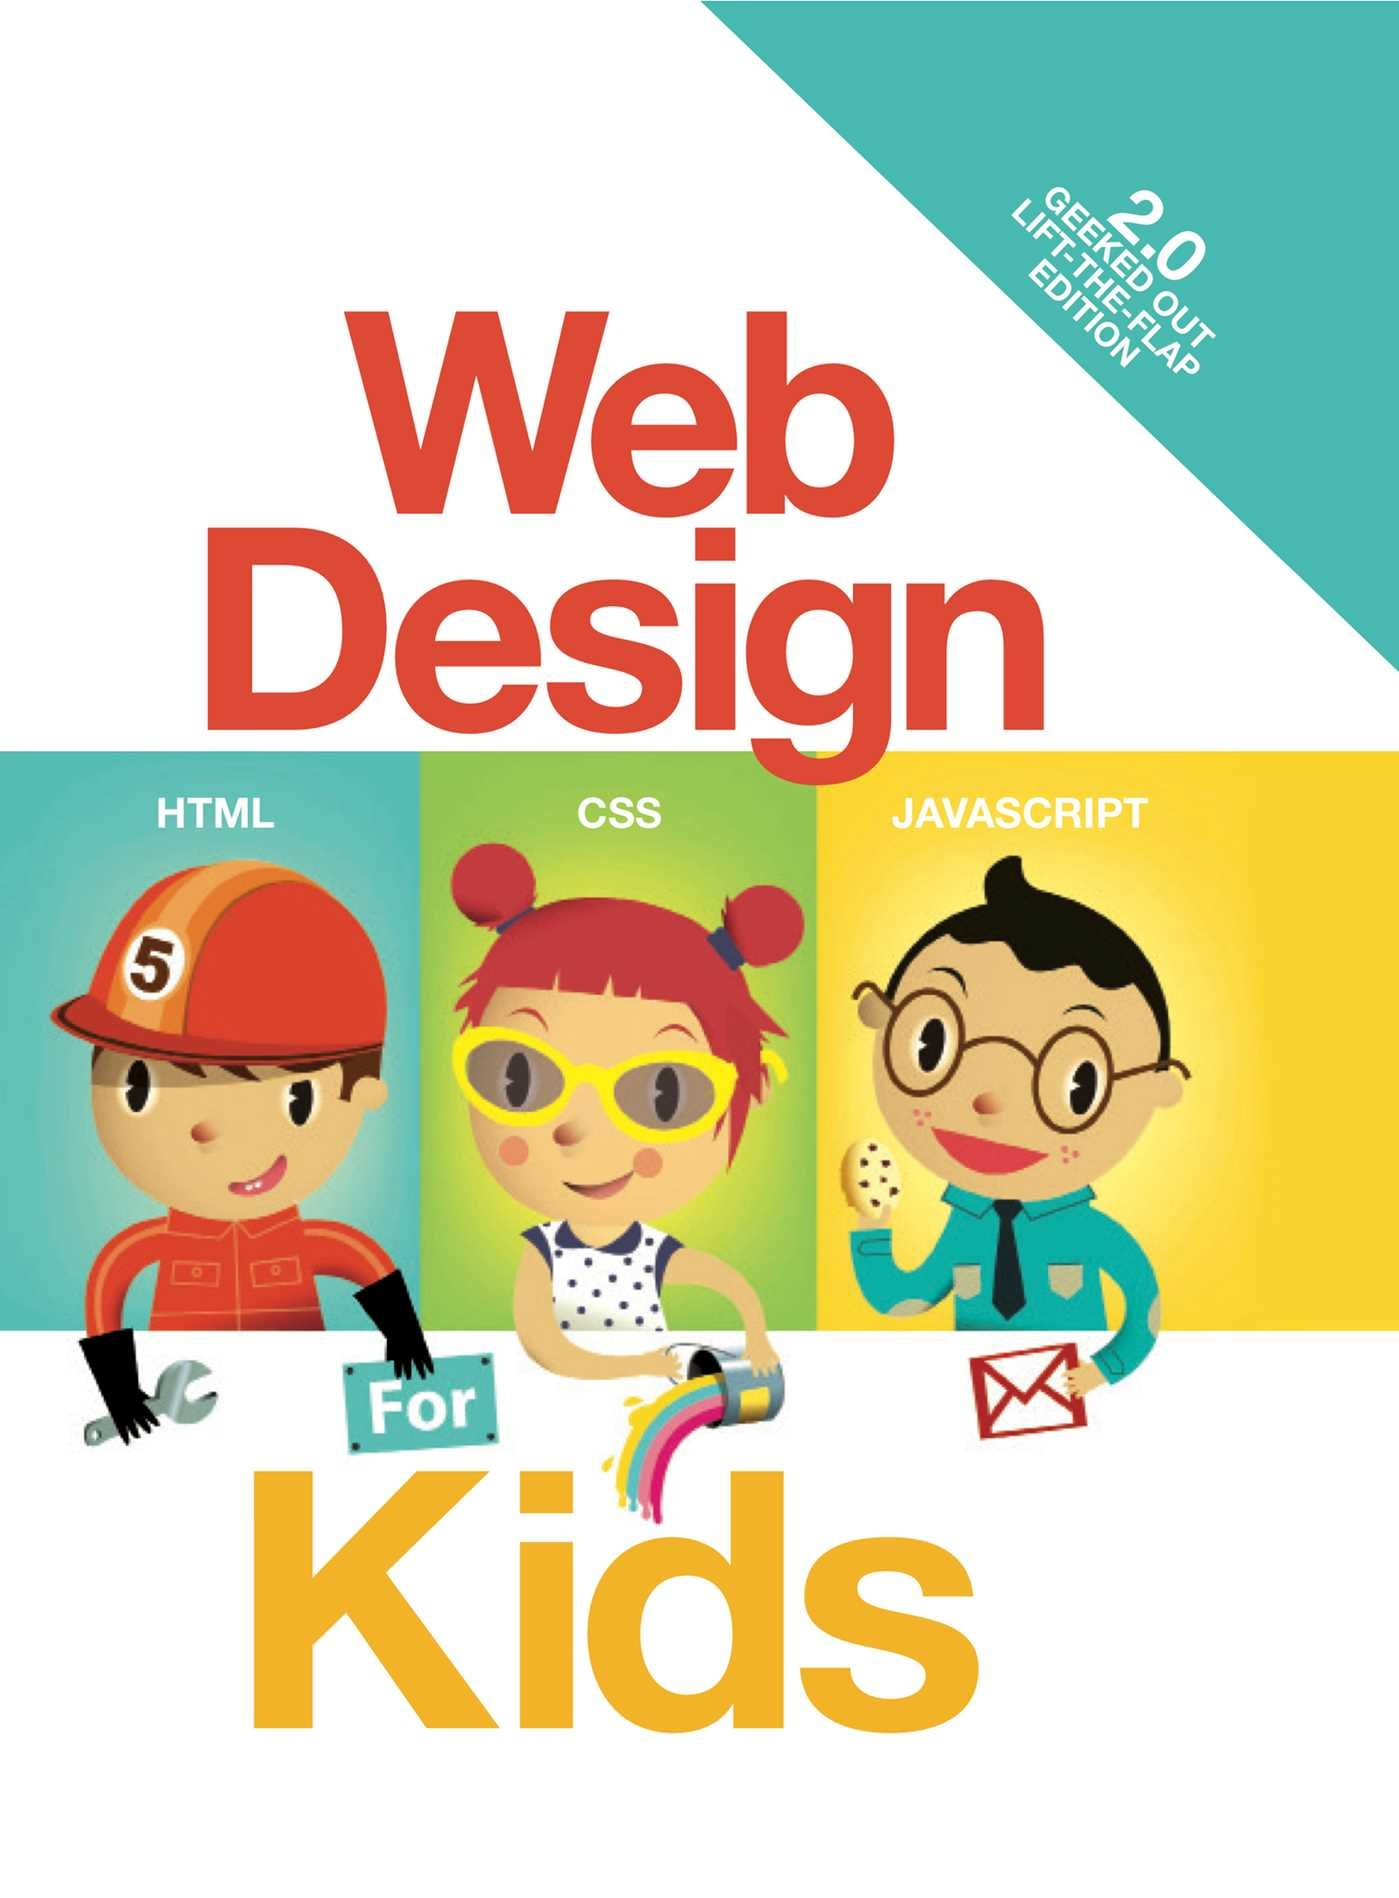 web design for kids john c vanden heuvel sr cristian turdera 9781499803112 amazoncom books